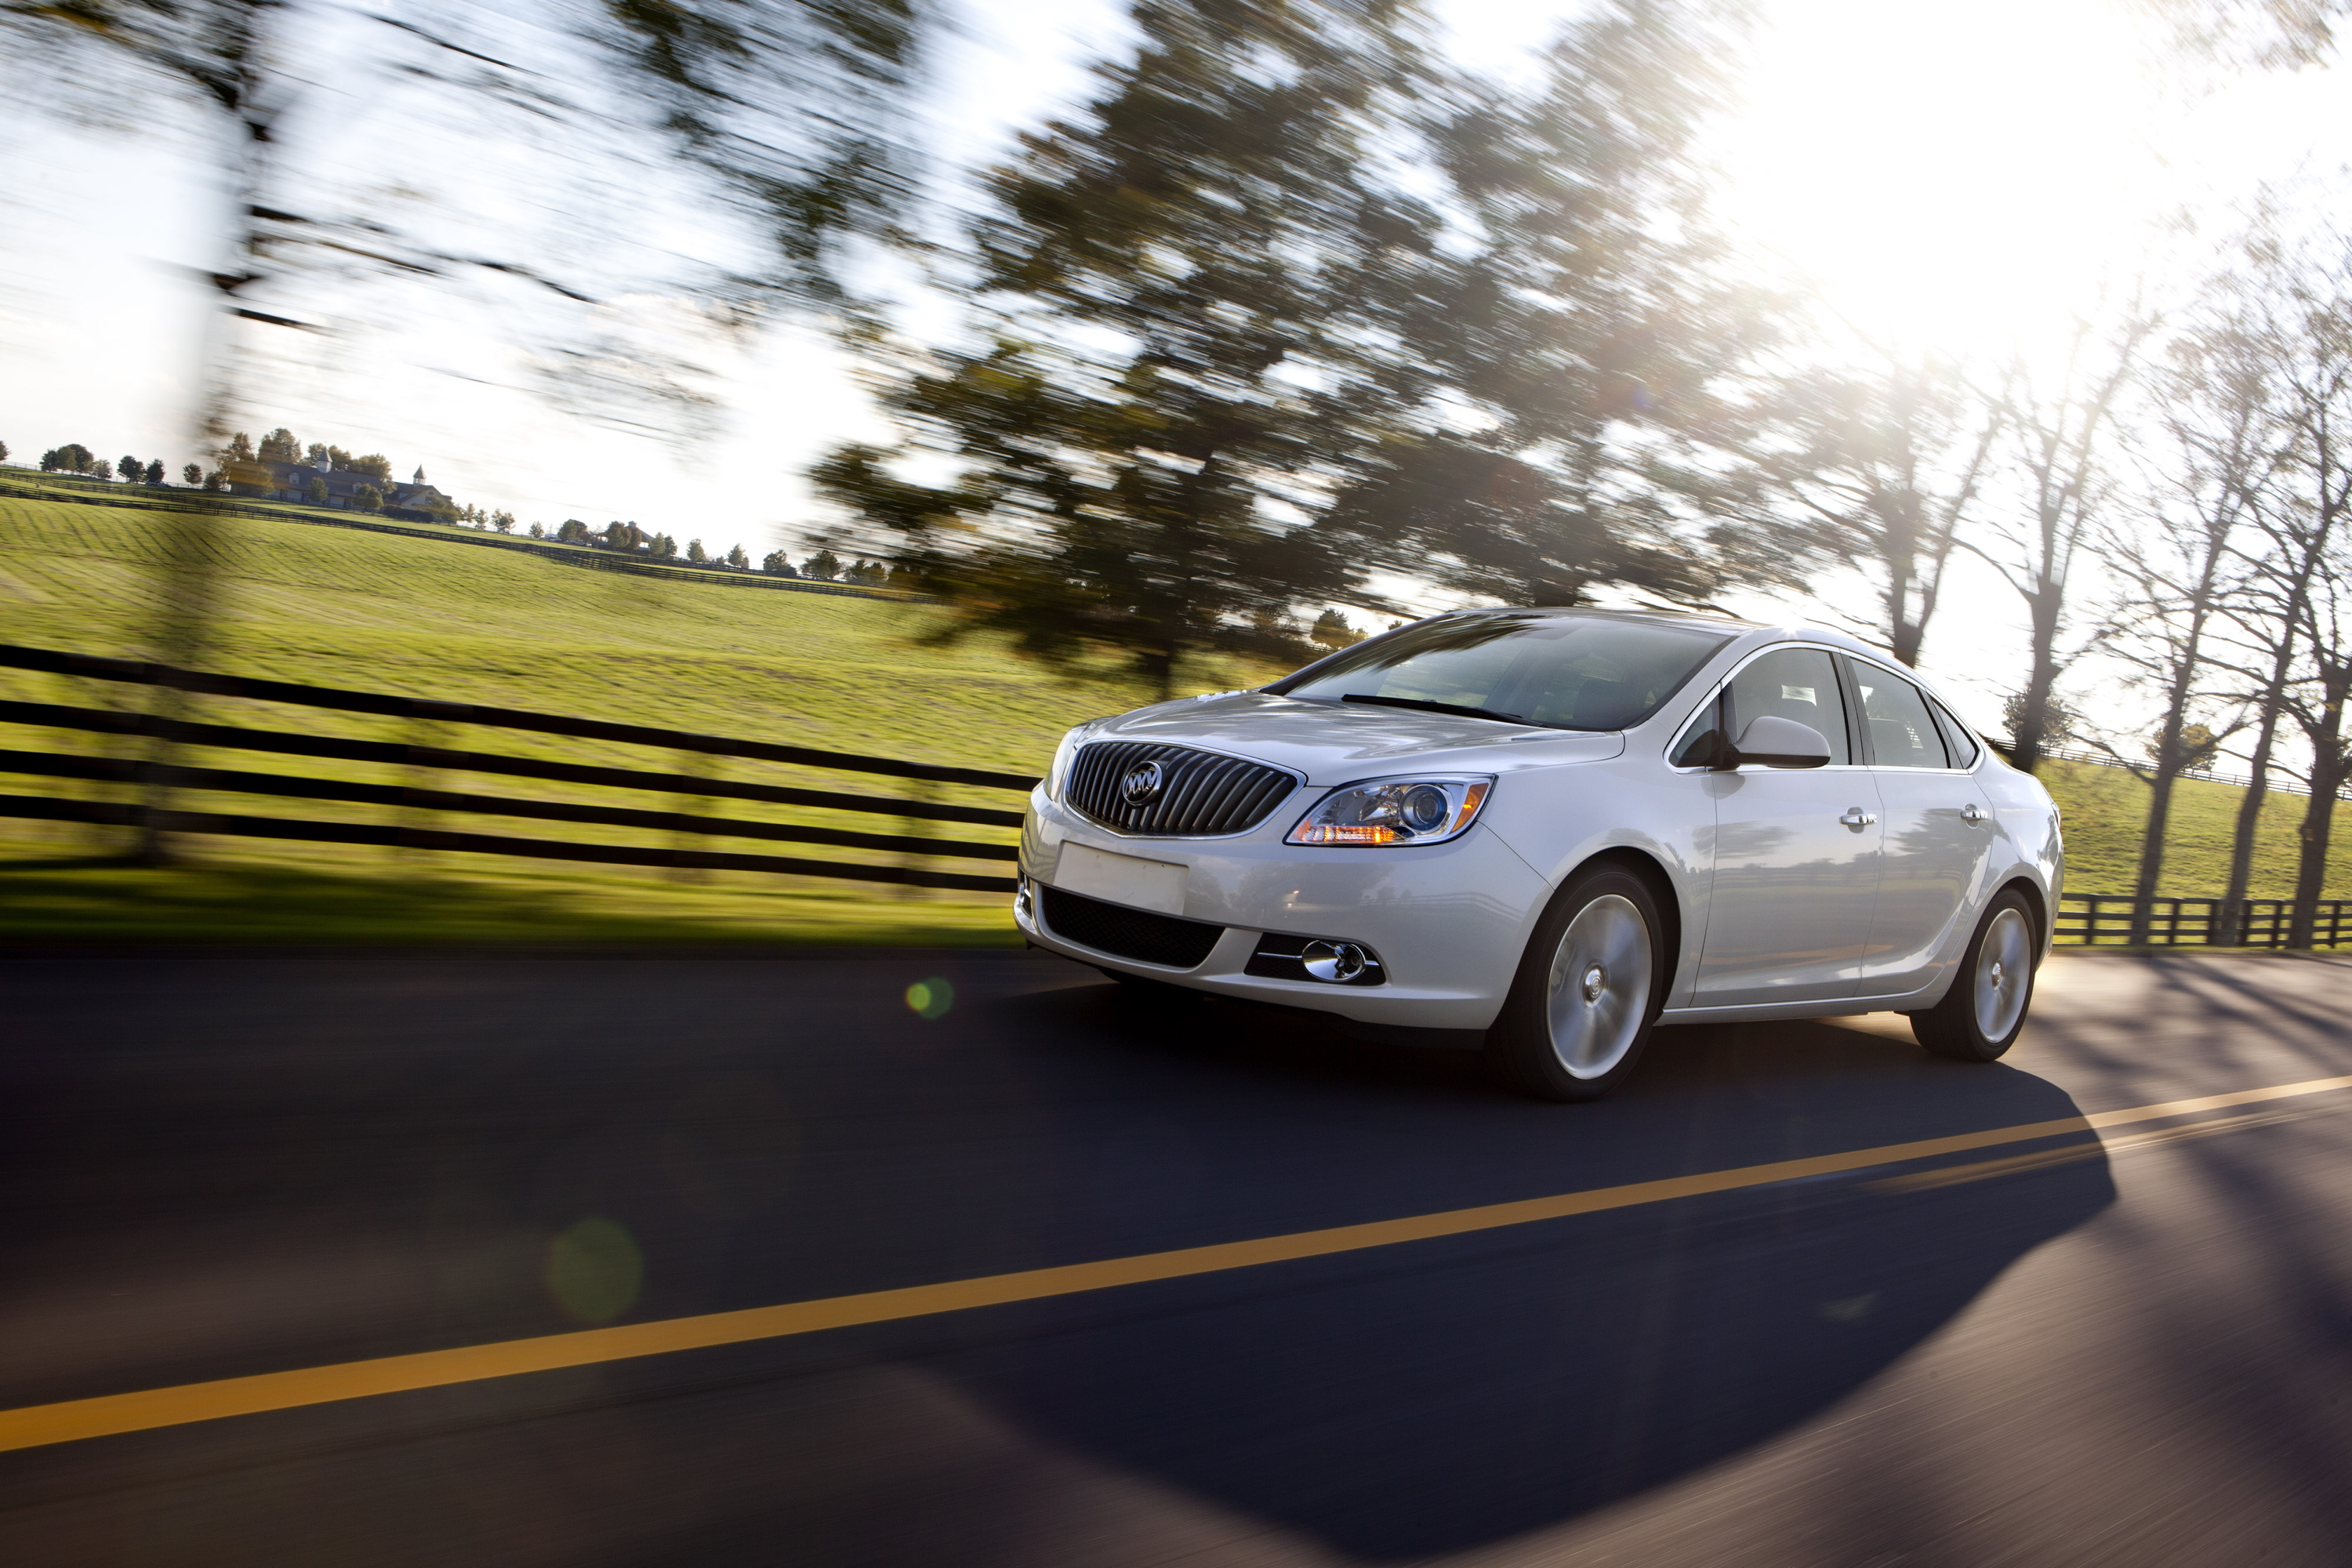 review design interior you that aspect fit buick be reader can truth as to verano verona a appreciate is most mentioned its speed of i it img if manual turbo part the nice in place